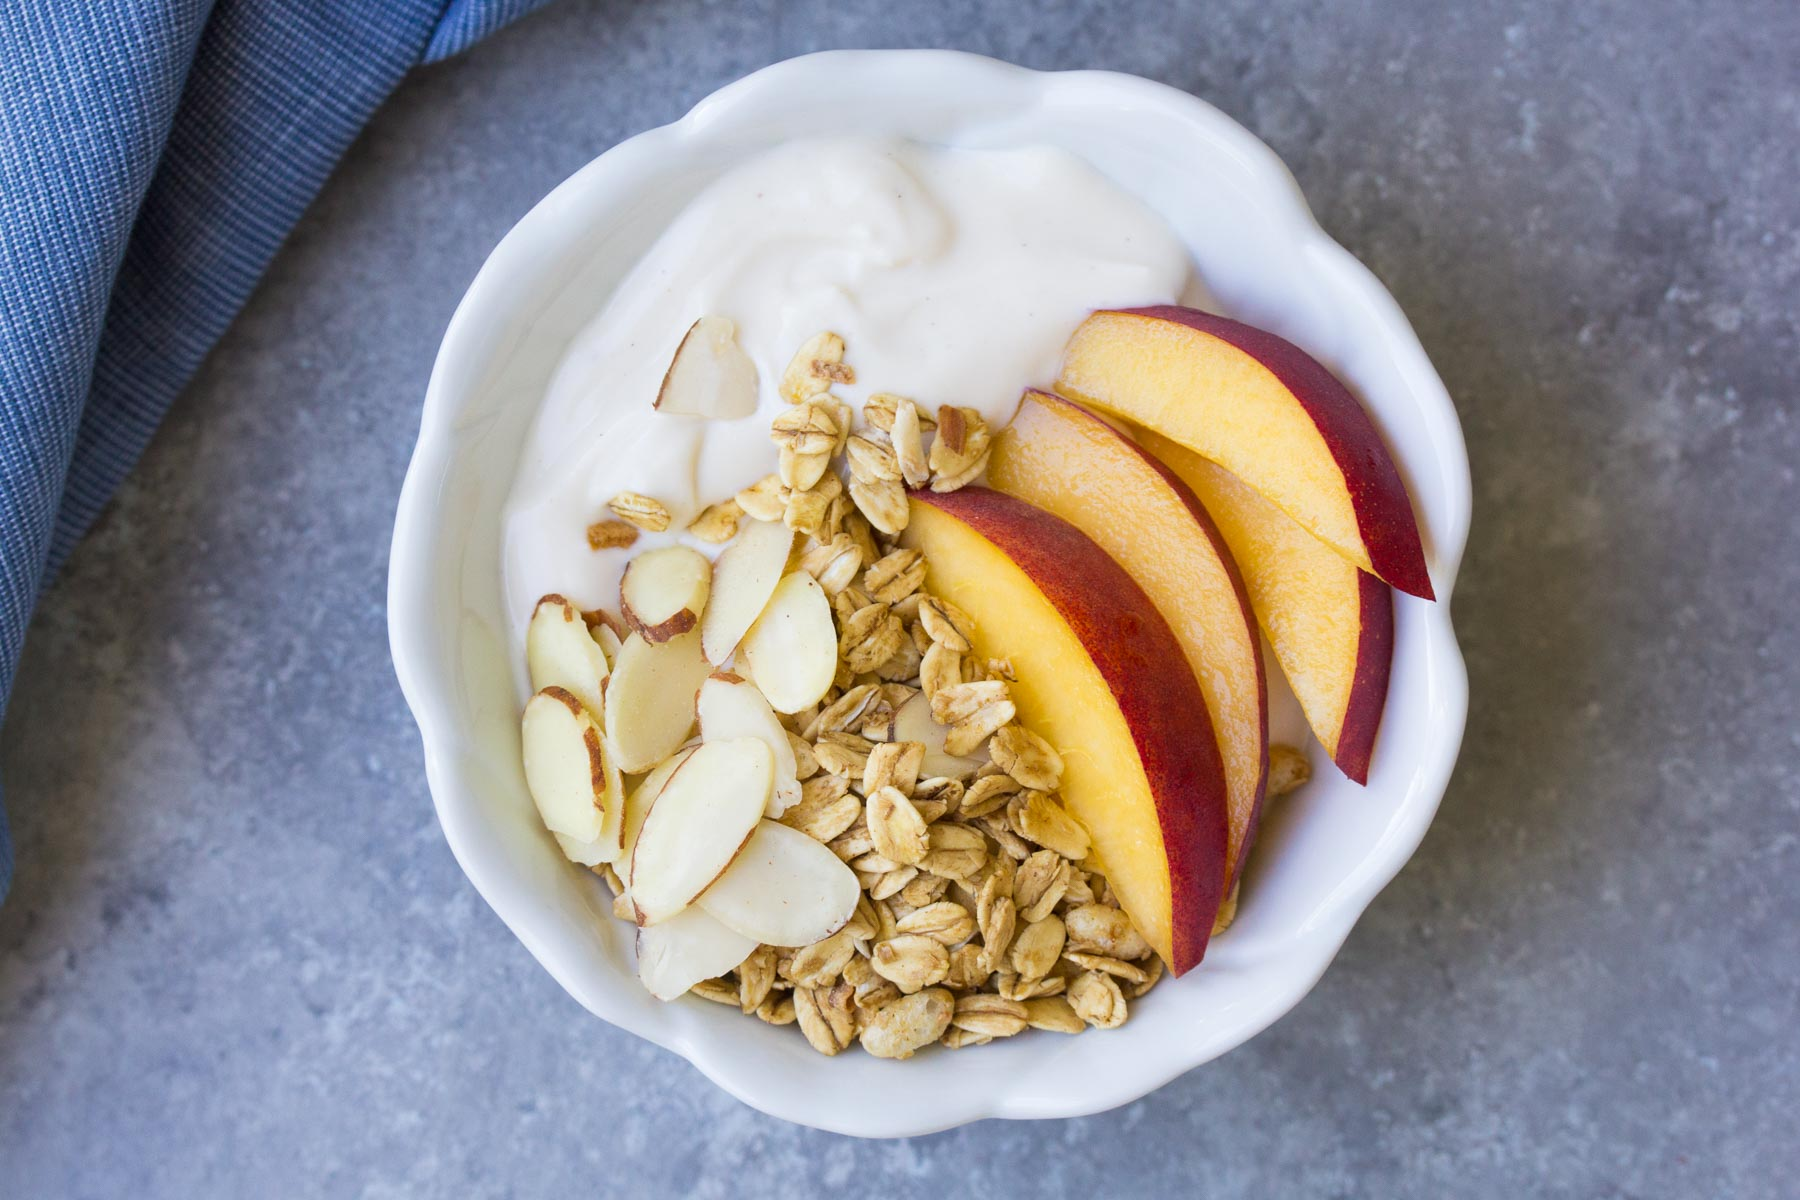 Peach Granola Yogurt Bowl. Diary free, made with almond milk yogurt.